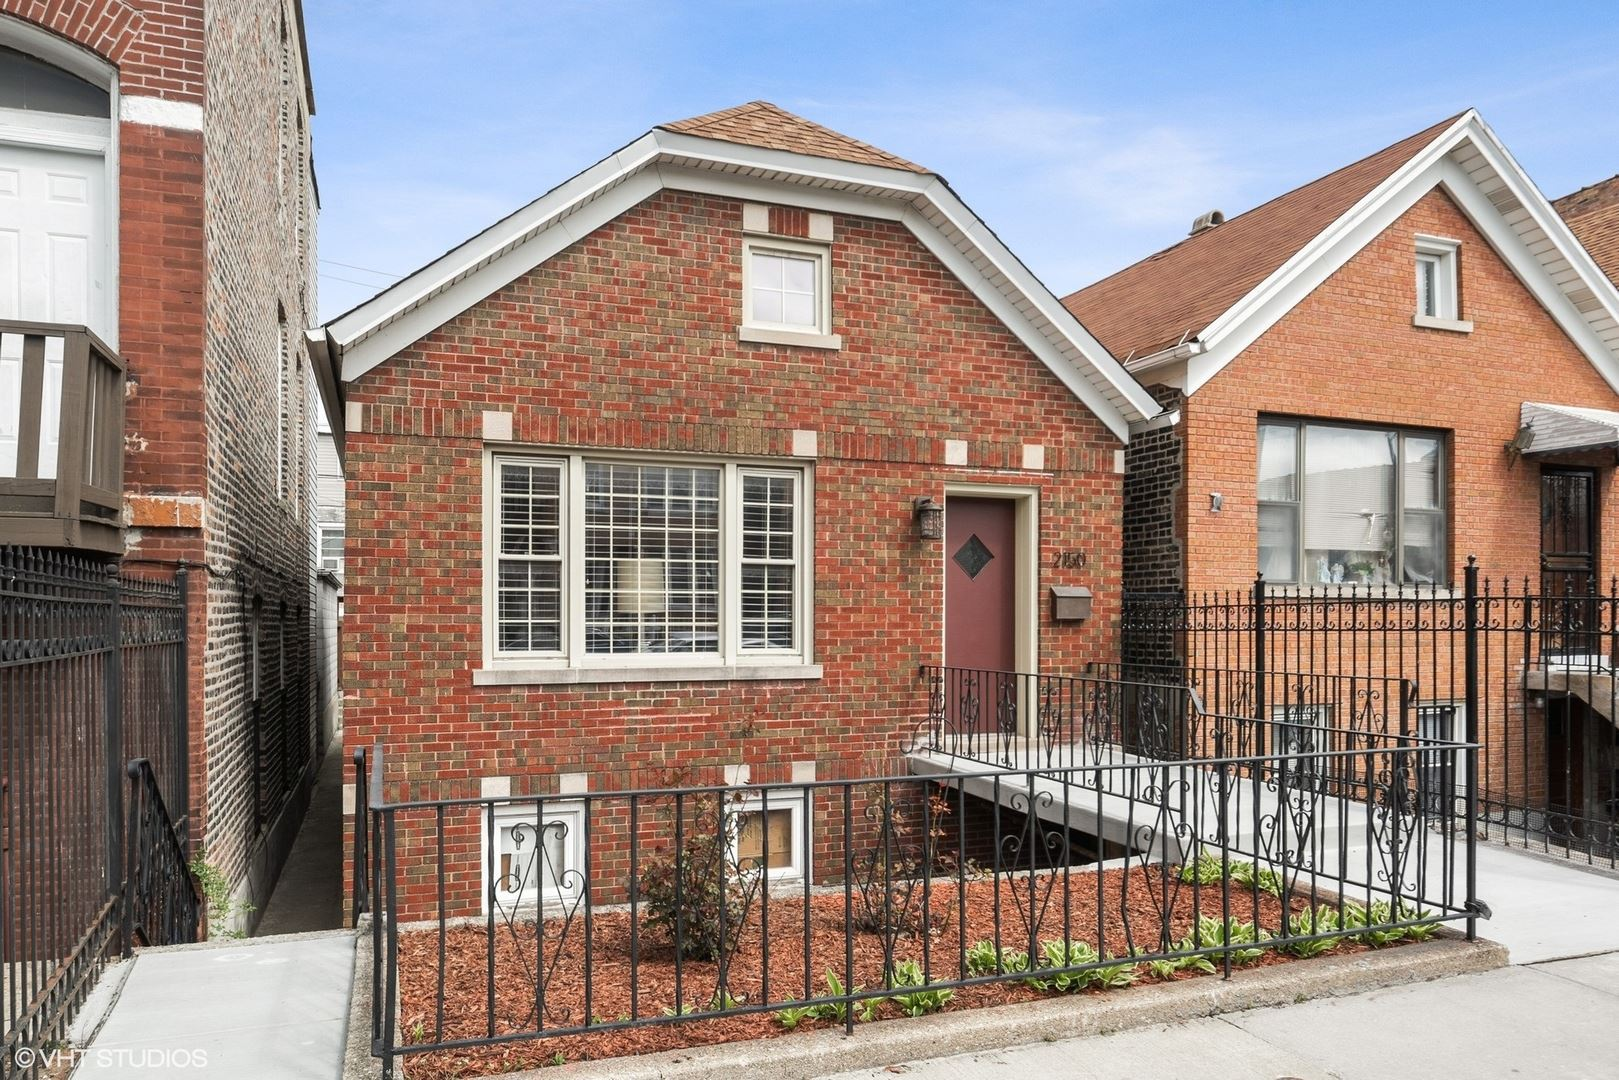 2150 W COULTER Street, Chicago, IL 60608 - #: 10706193